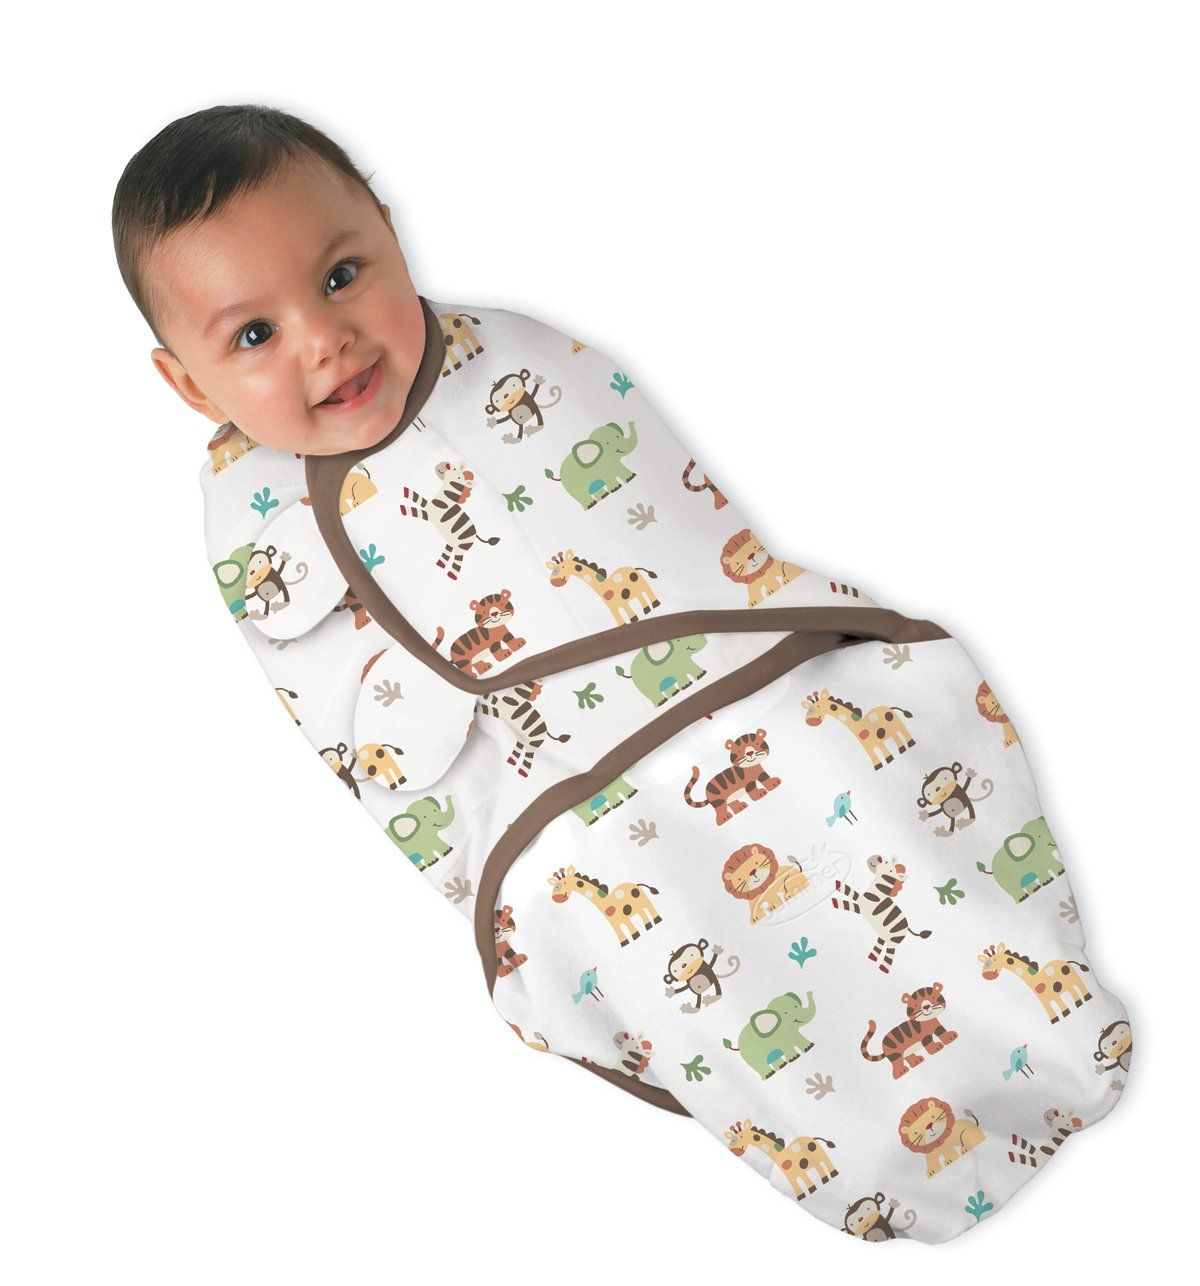 Einschlagdecke Baby Amazon Summer Infant Swaddleme 100 Cotton Jungle Print Small